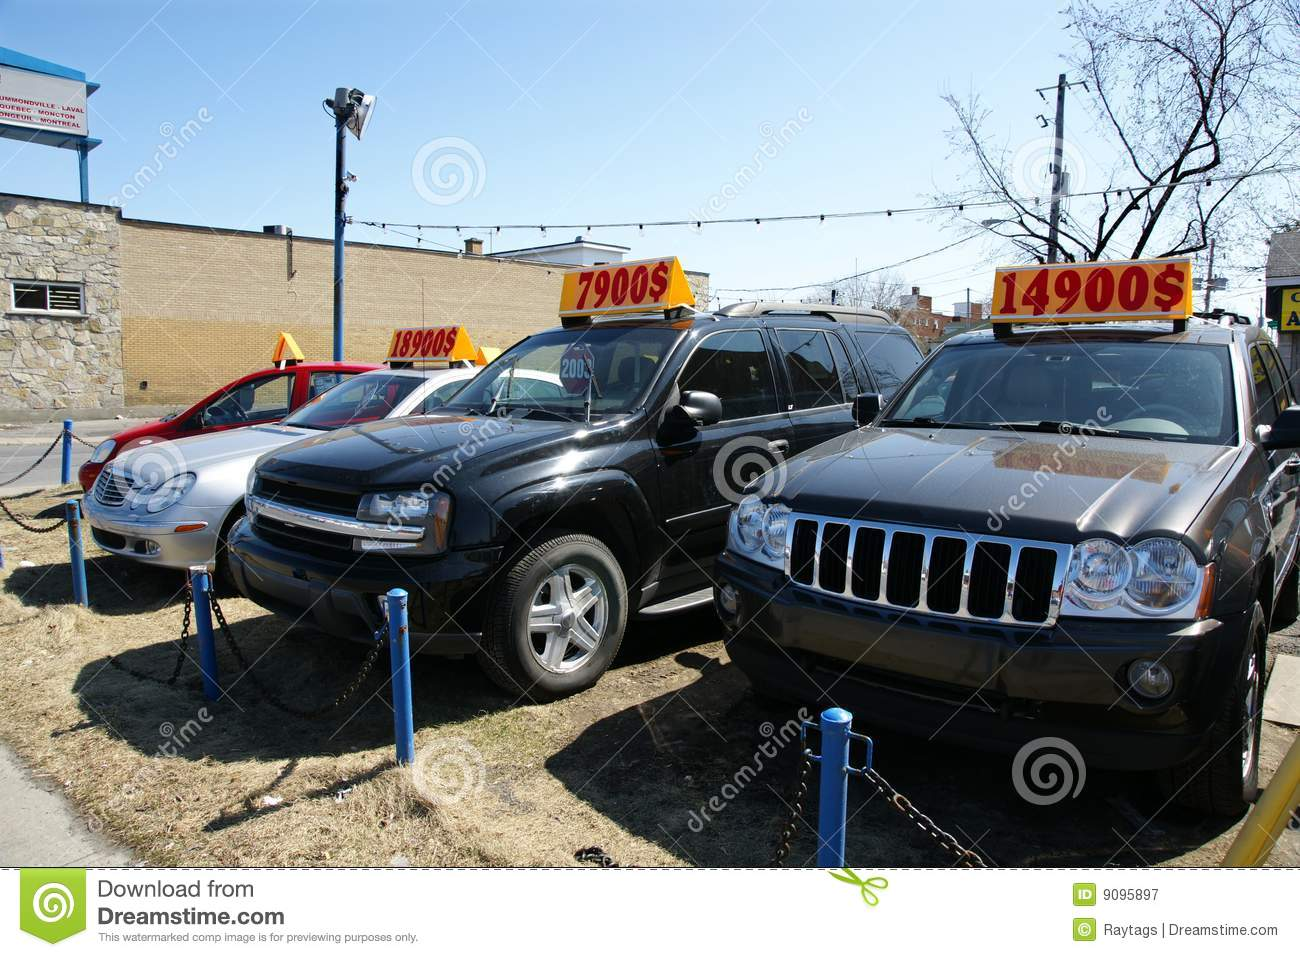 Dealer De Carros >> Used Trucks And Cars For Sale Stock Image - Image of driving, parked: 9095897